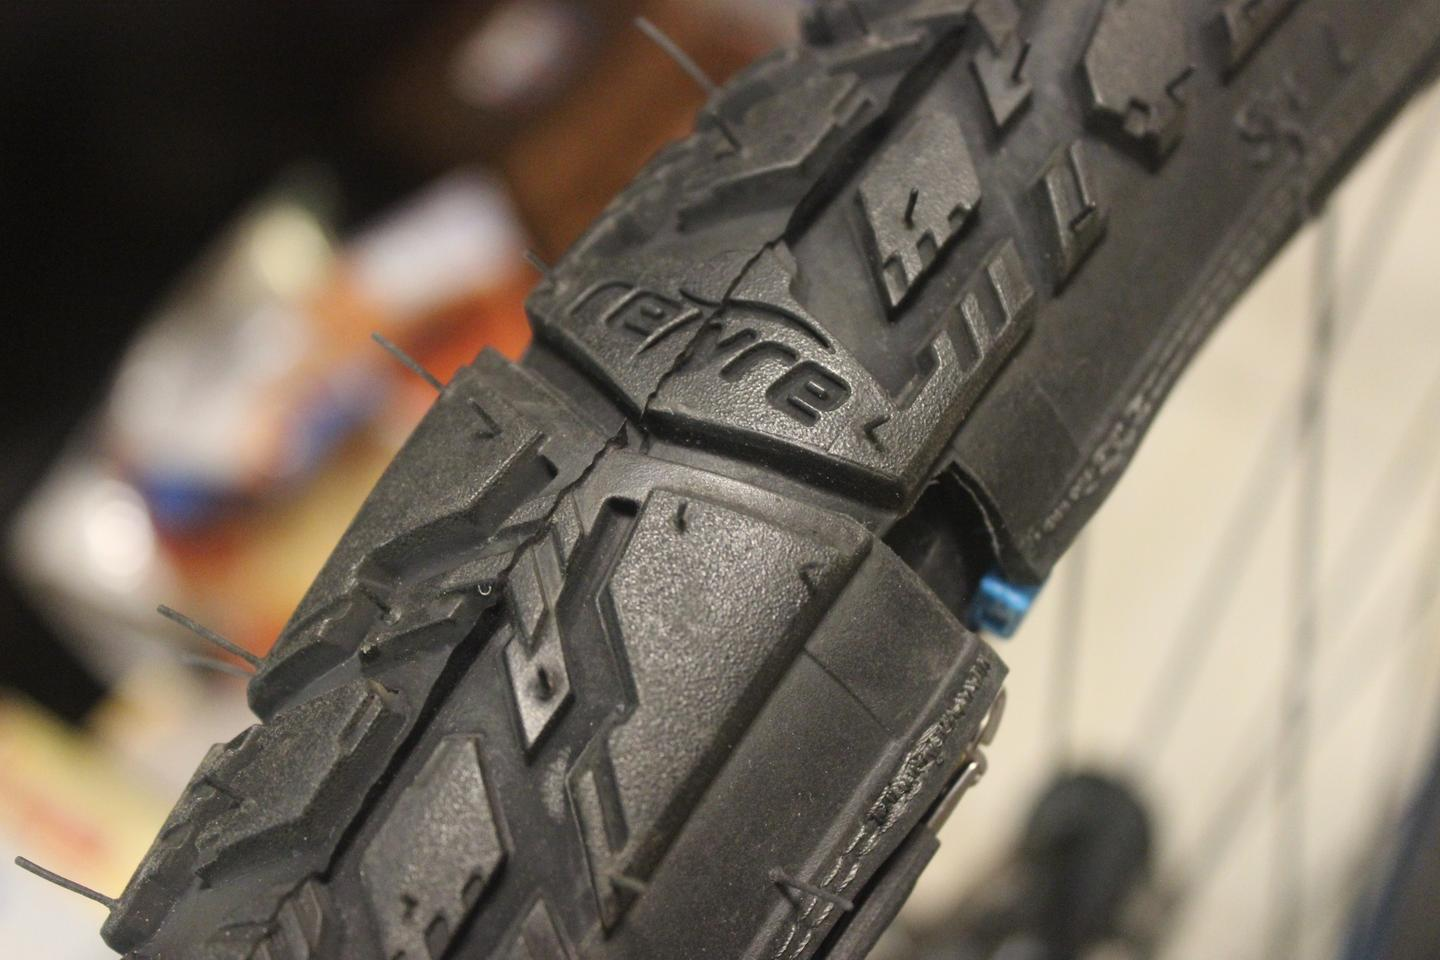 There's a small gap between the two ends of each reTyre tread skin